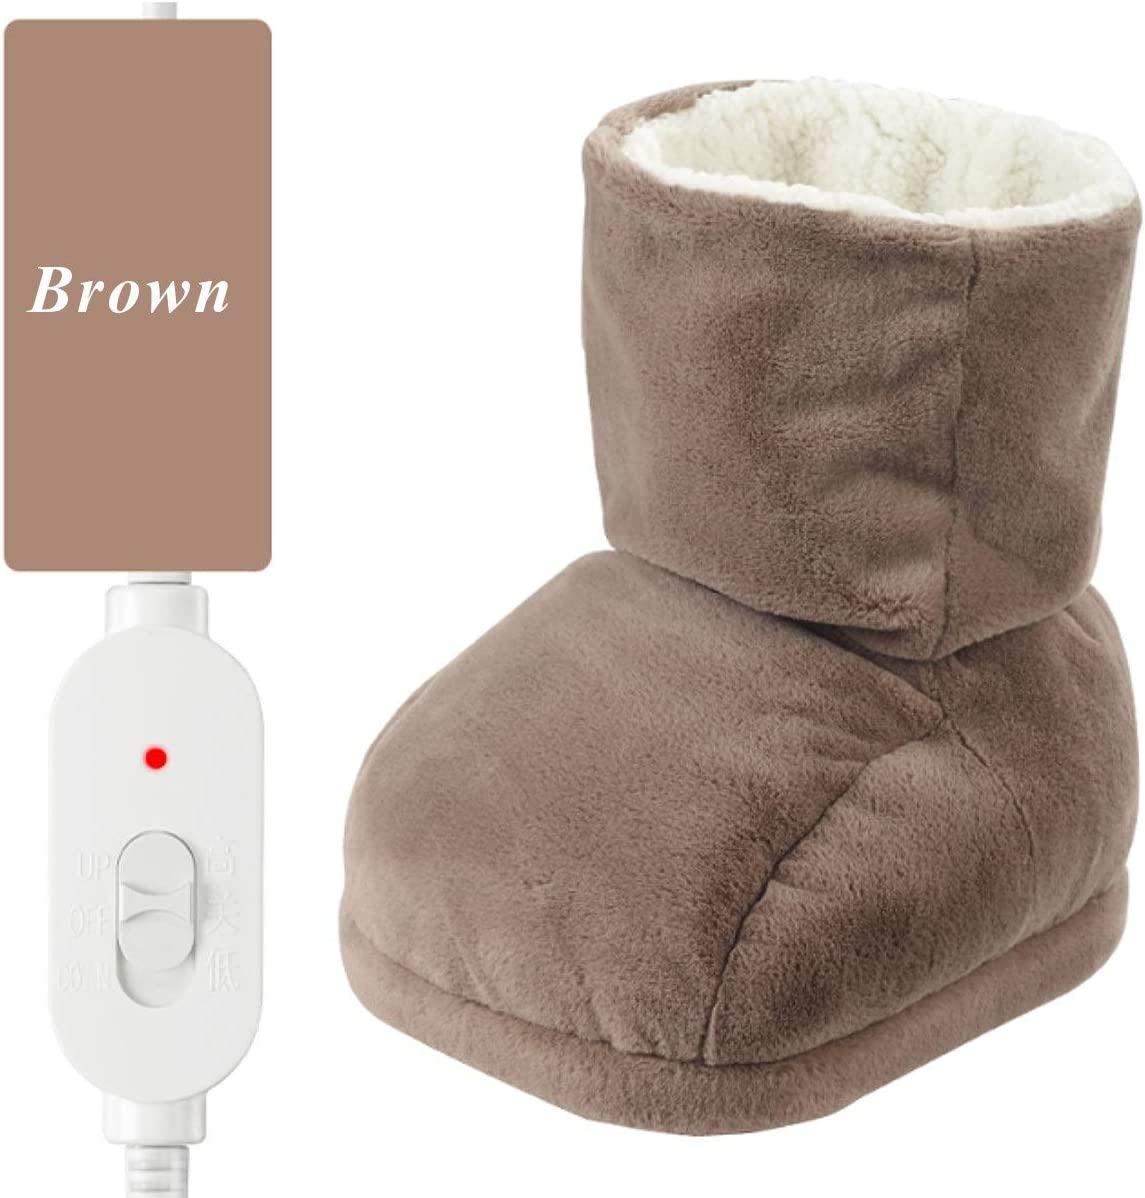 Details about  /Electric 5V USB Fast Heating Shoes Foot Warmer Plush Warming Feet Heater Outdoor